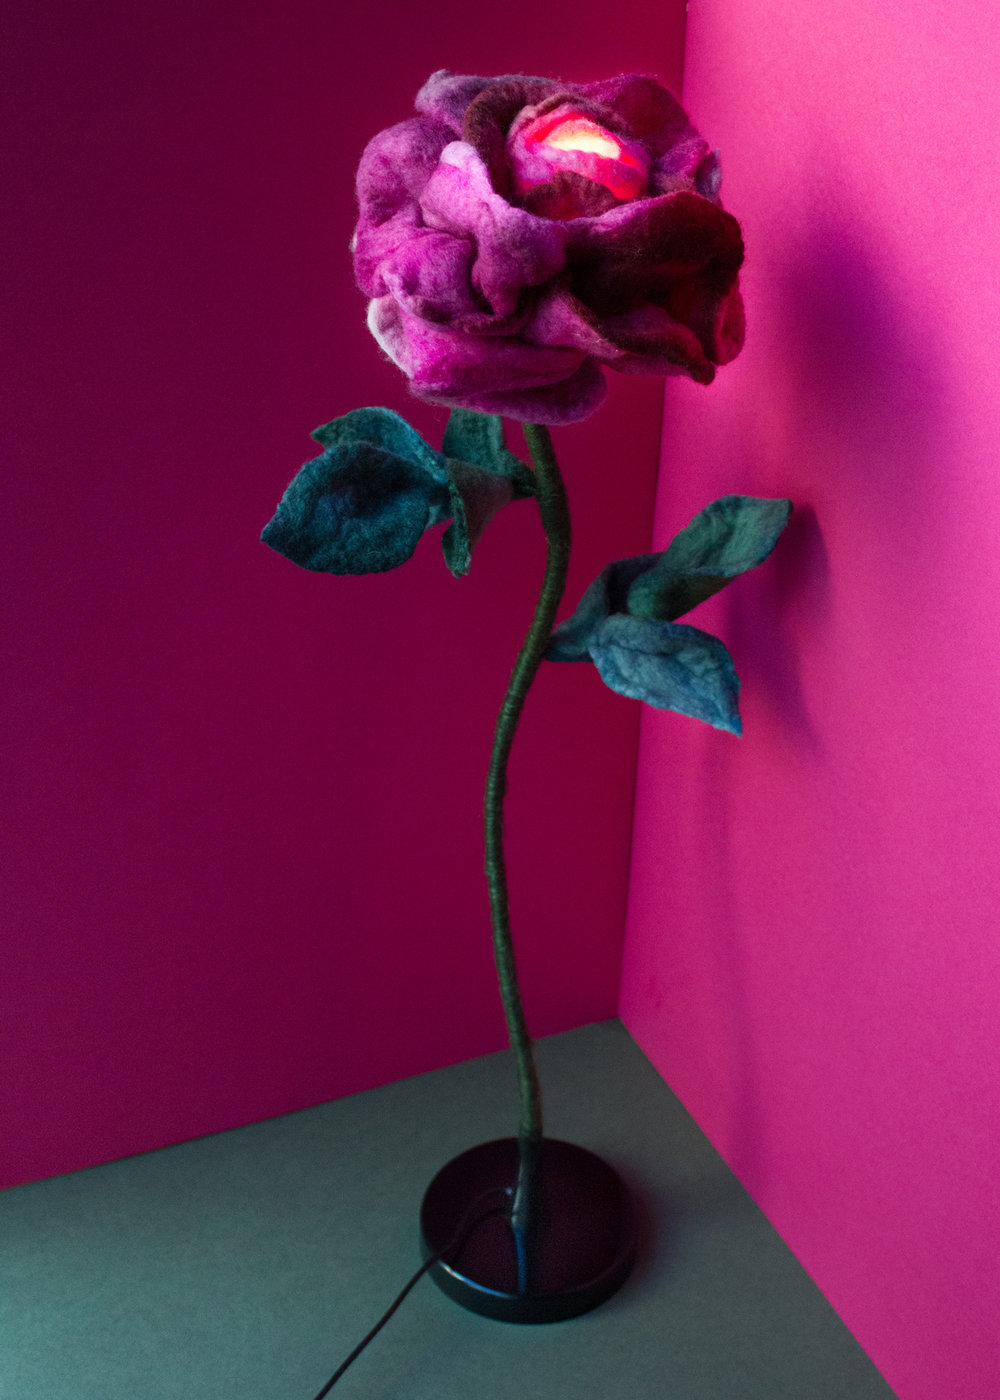 felt-flower-lamp_Wine-Rose_Adelya-Tumasyeva_3.jpg